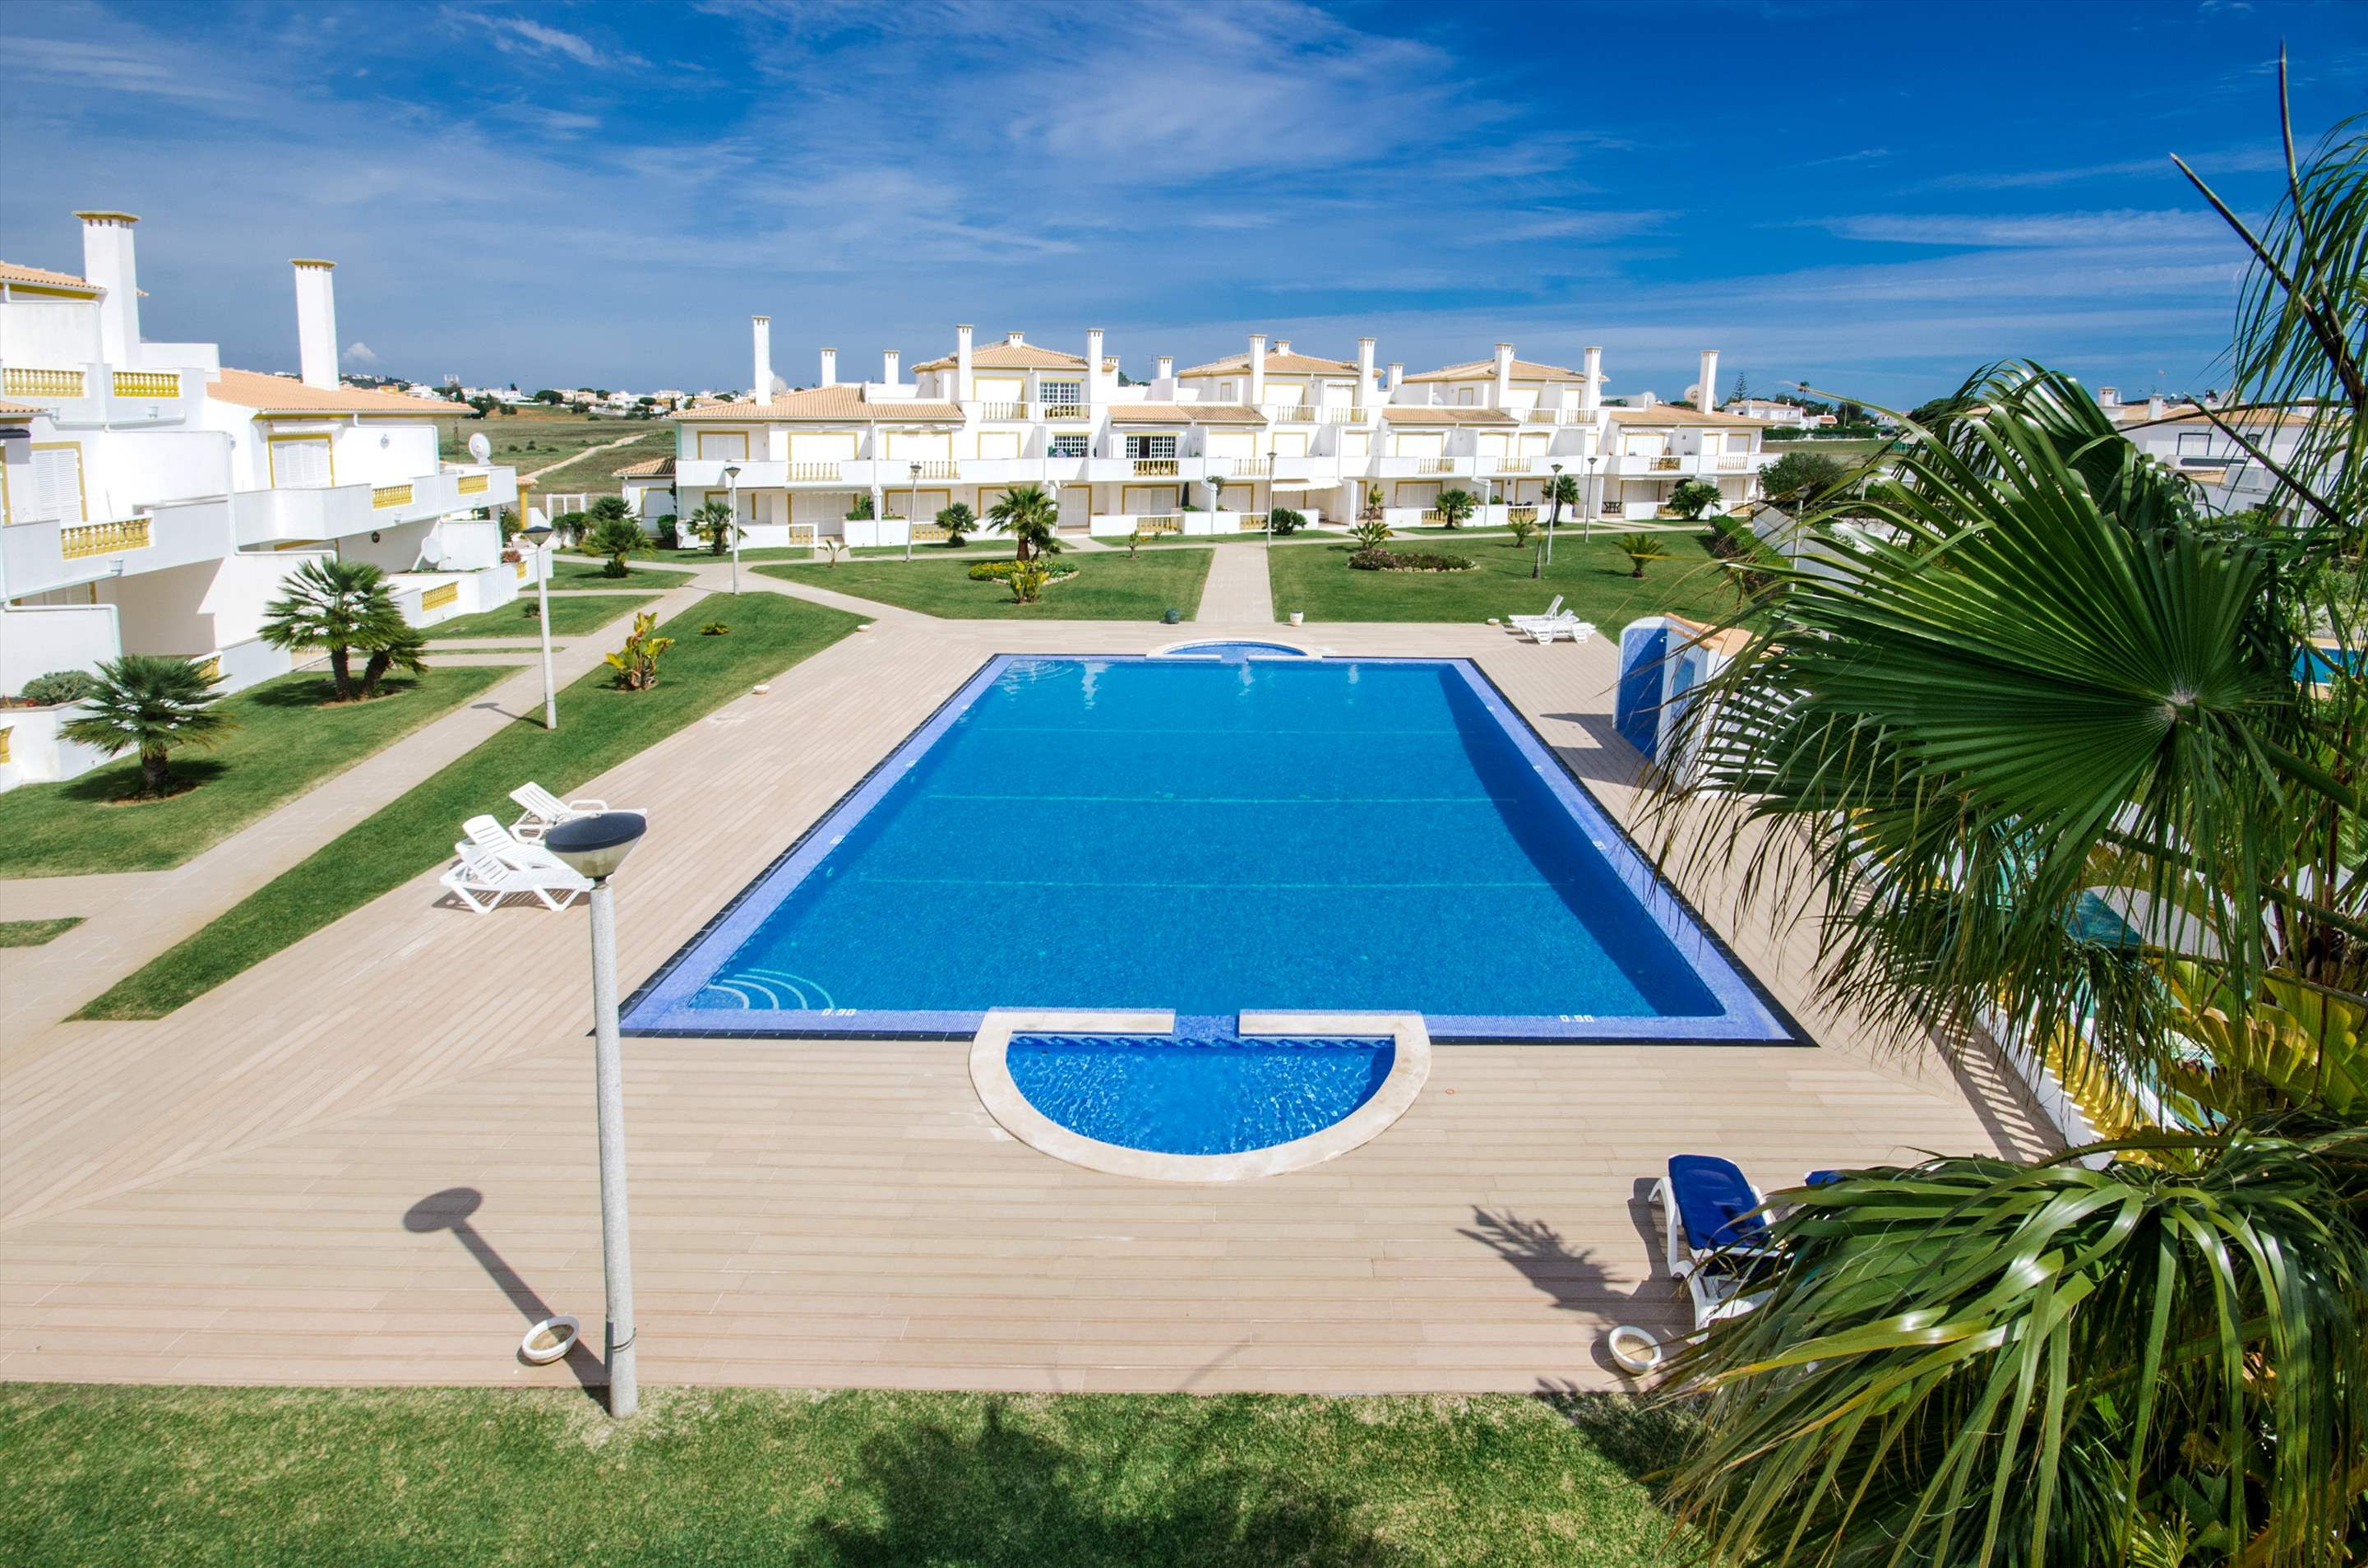 Apt O Monte, Up to 6 Persons, 3 bedroom apartment in Gale, Vale da Parra and Guia, Algarve Photo #16